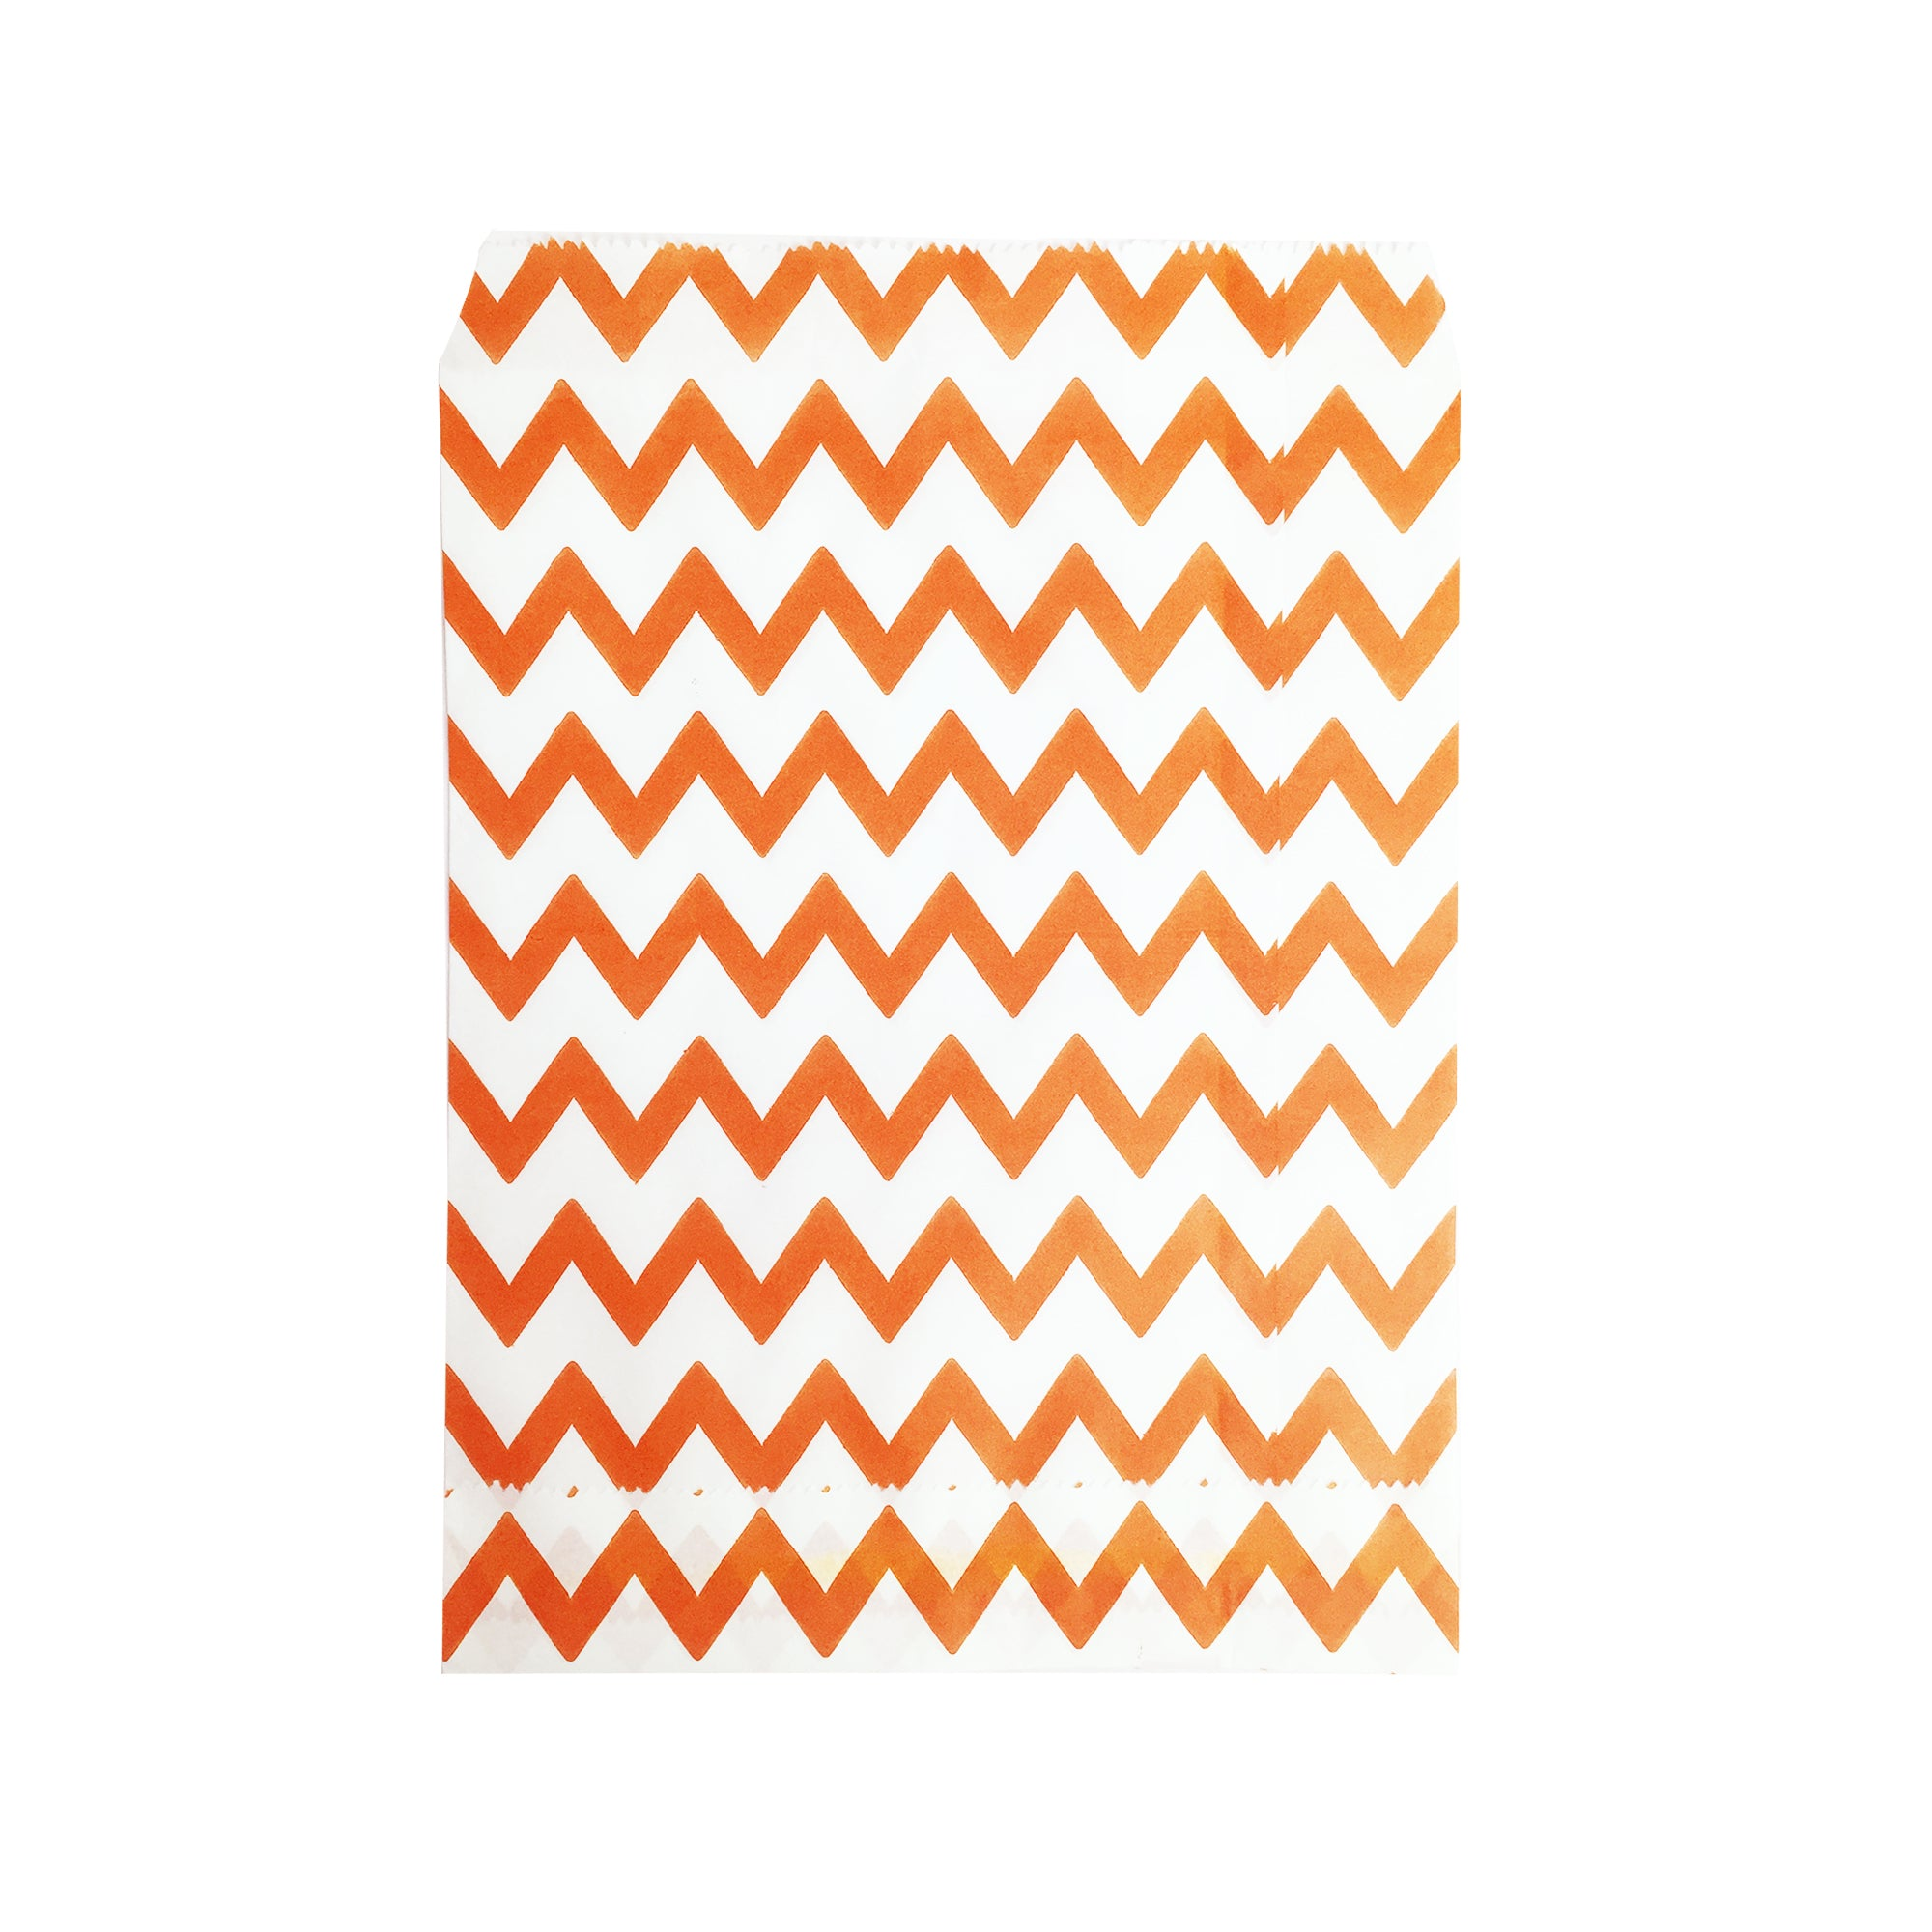 Big Orange Zigzag Paper Bag - 50 pcs